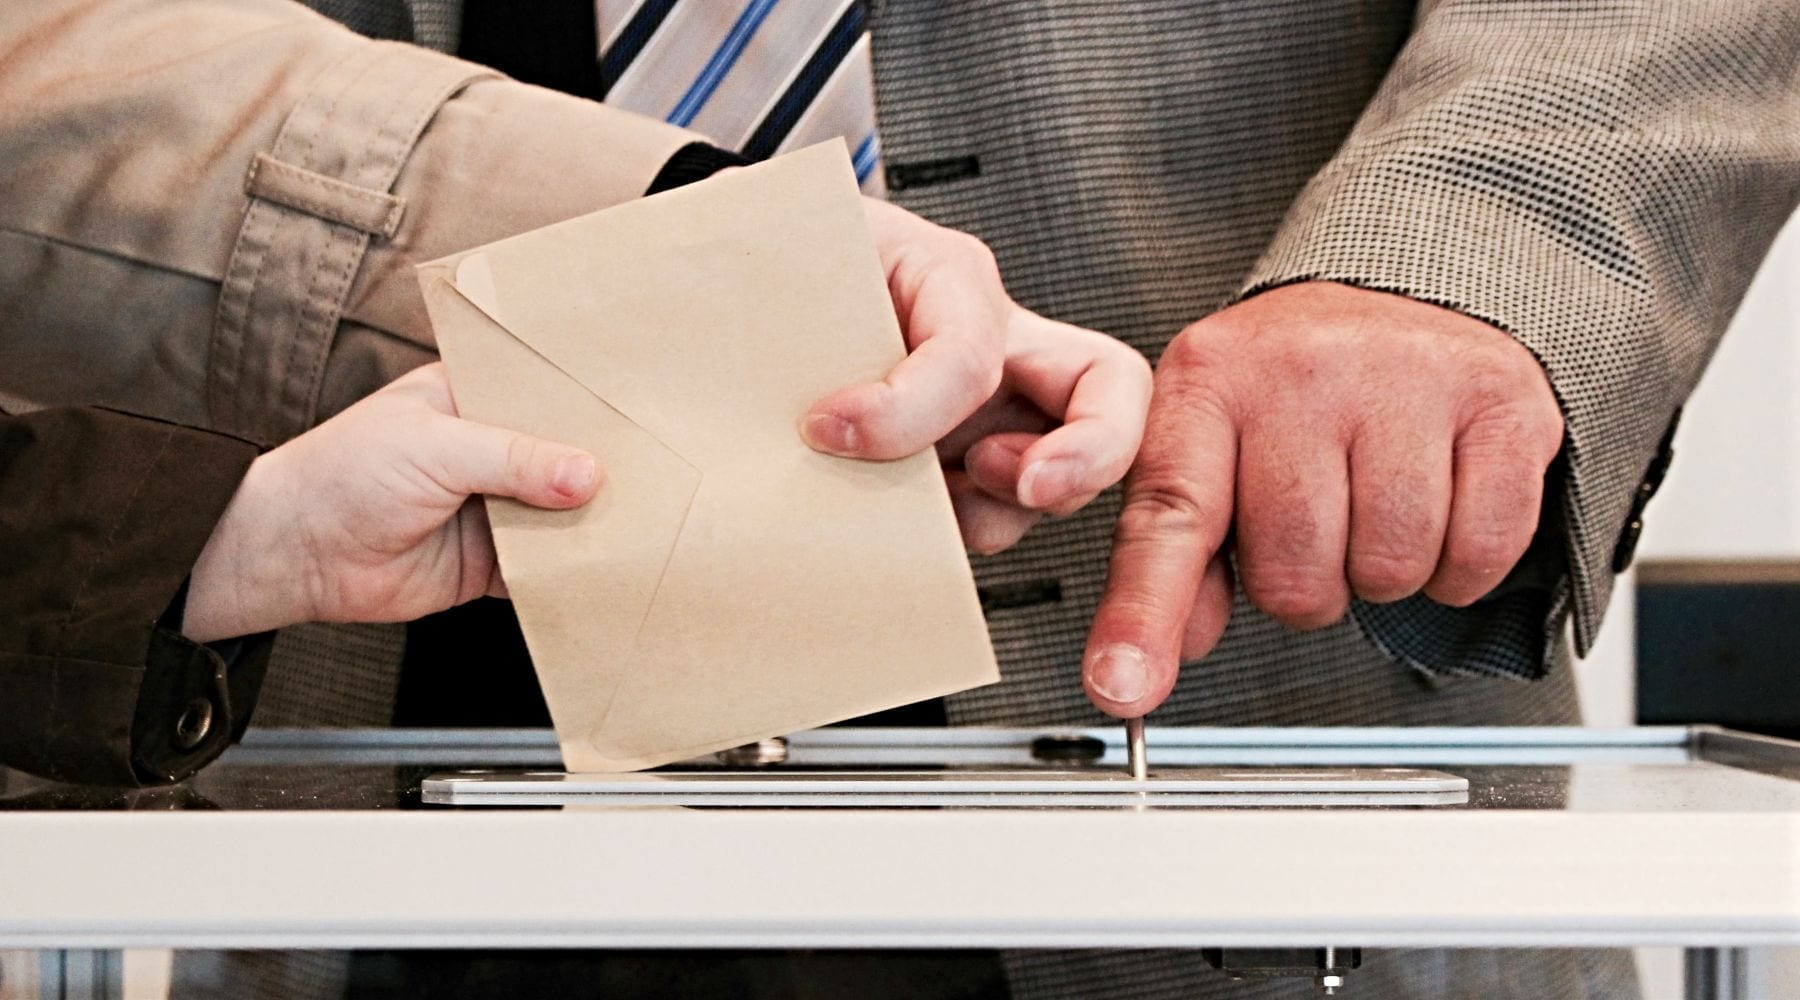 4 Hopeful Suggestions When Elections Don't Go Your Way